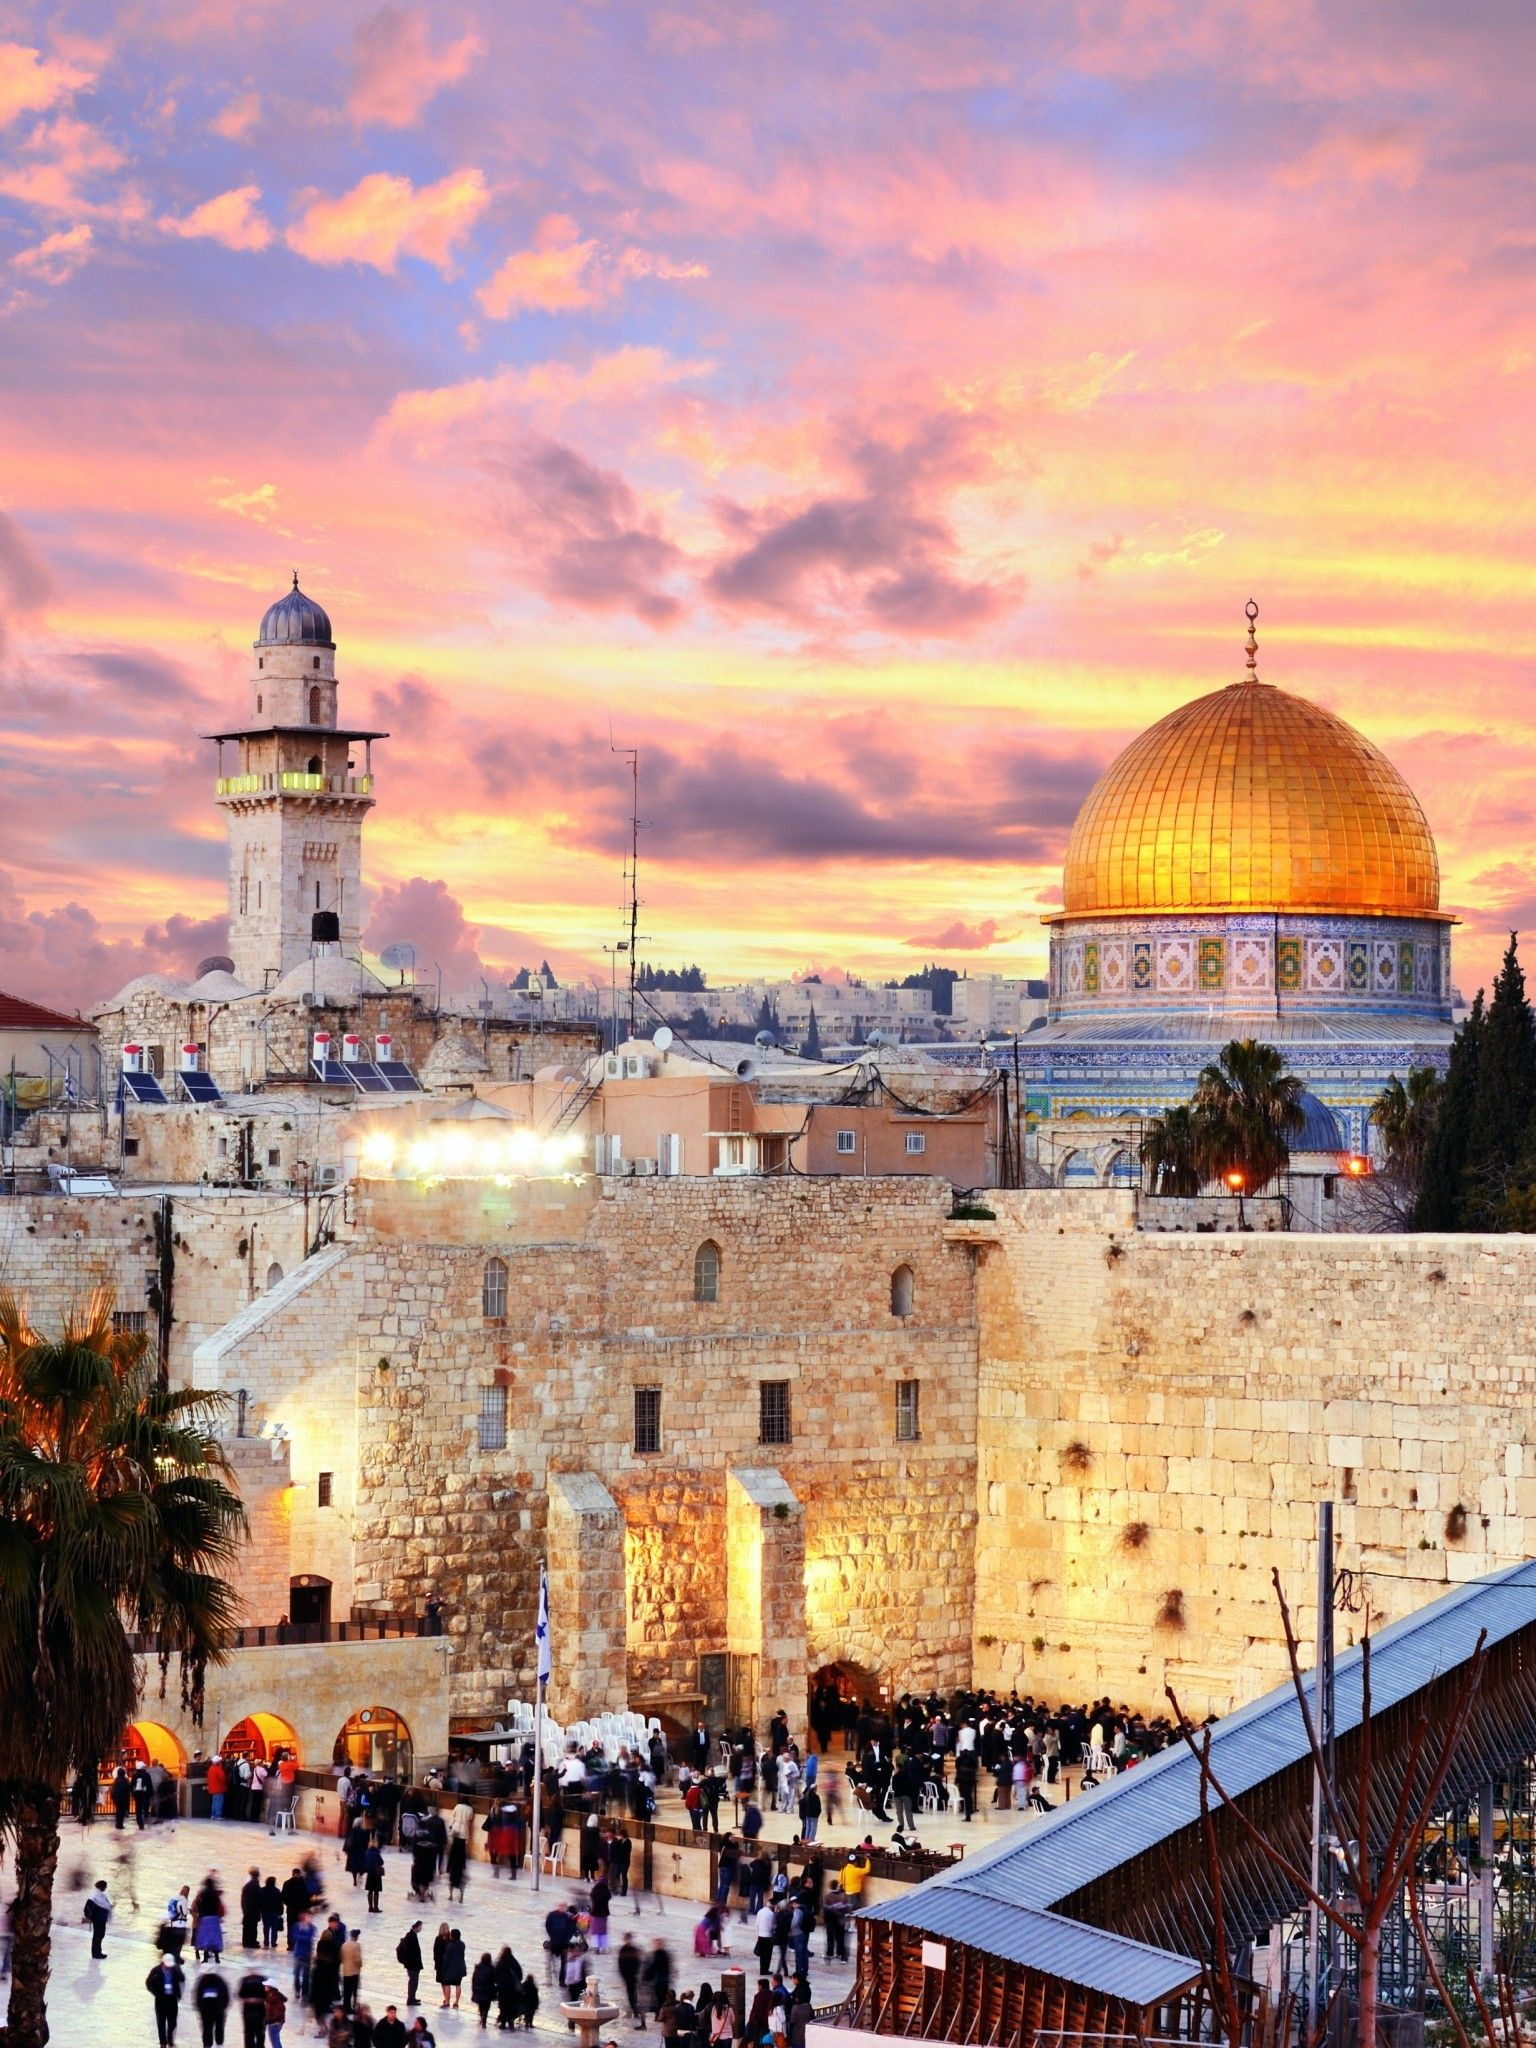 1536x2048 Download 1536x2048 Jerusalem, Sky, Wall, Clouds, Sunset ...